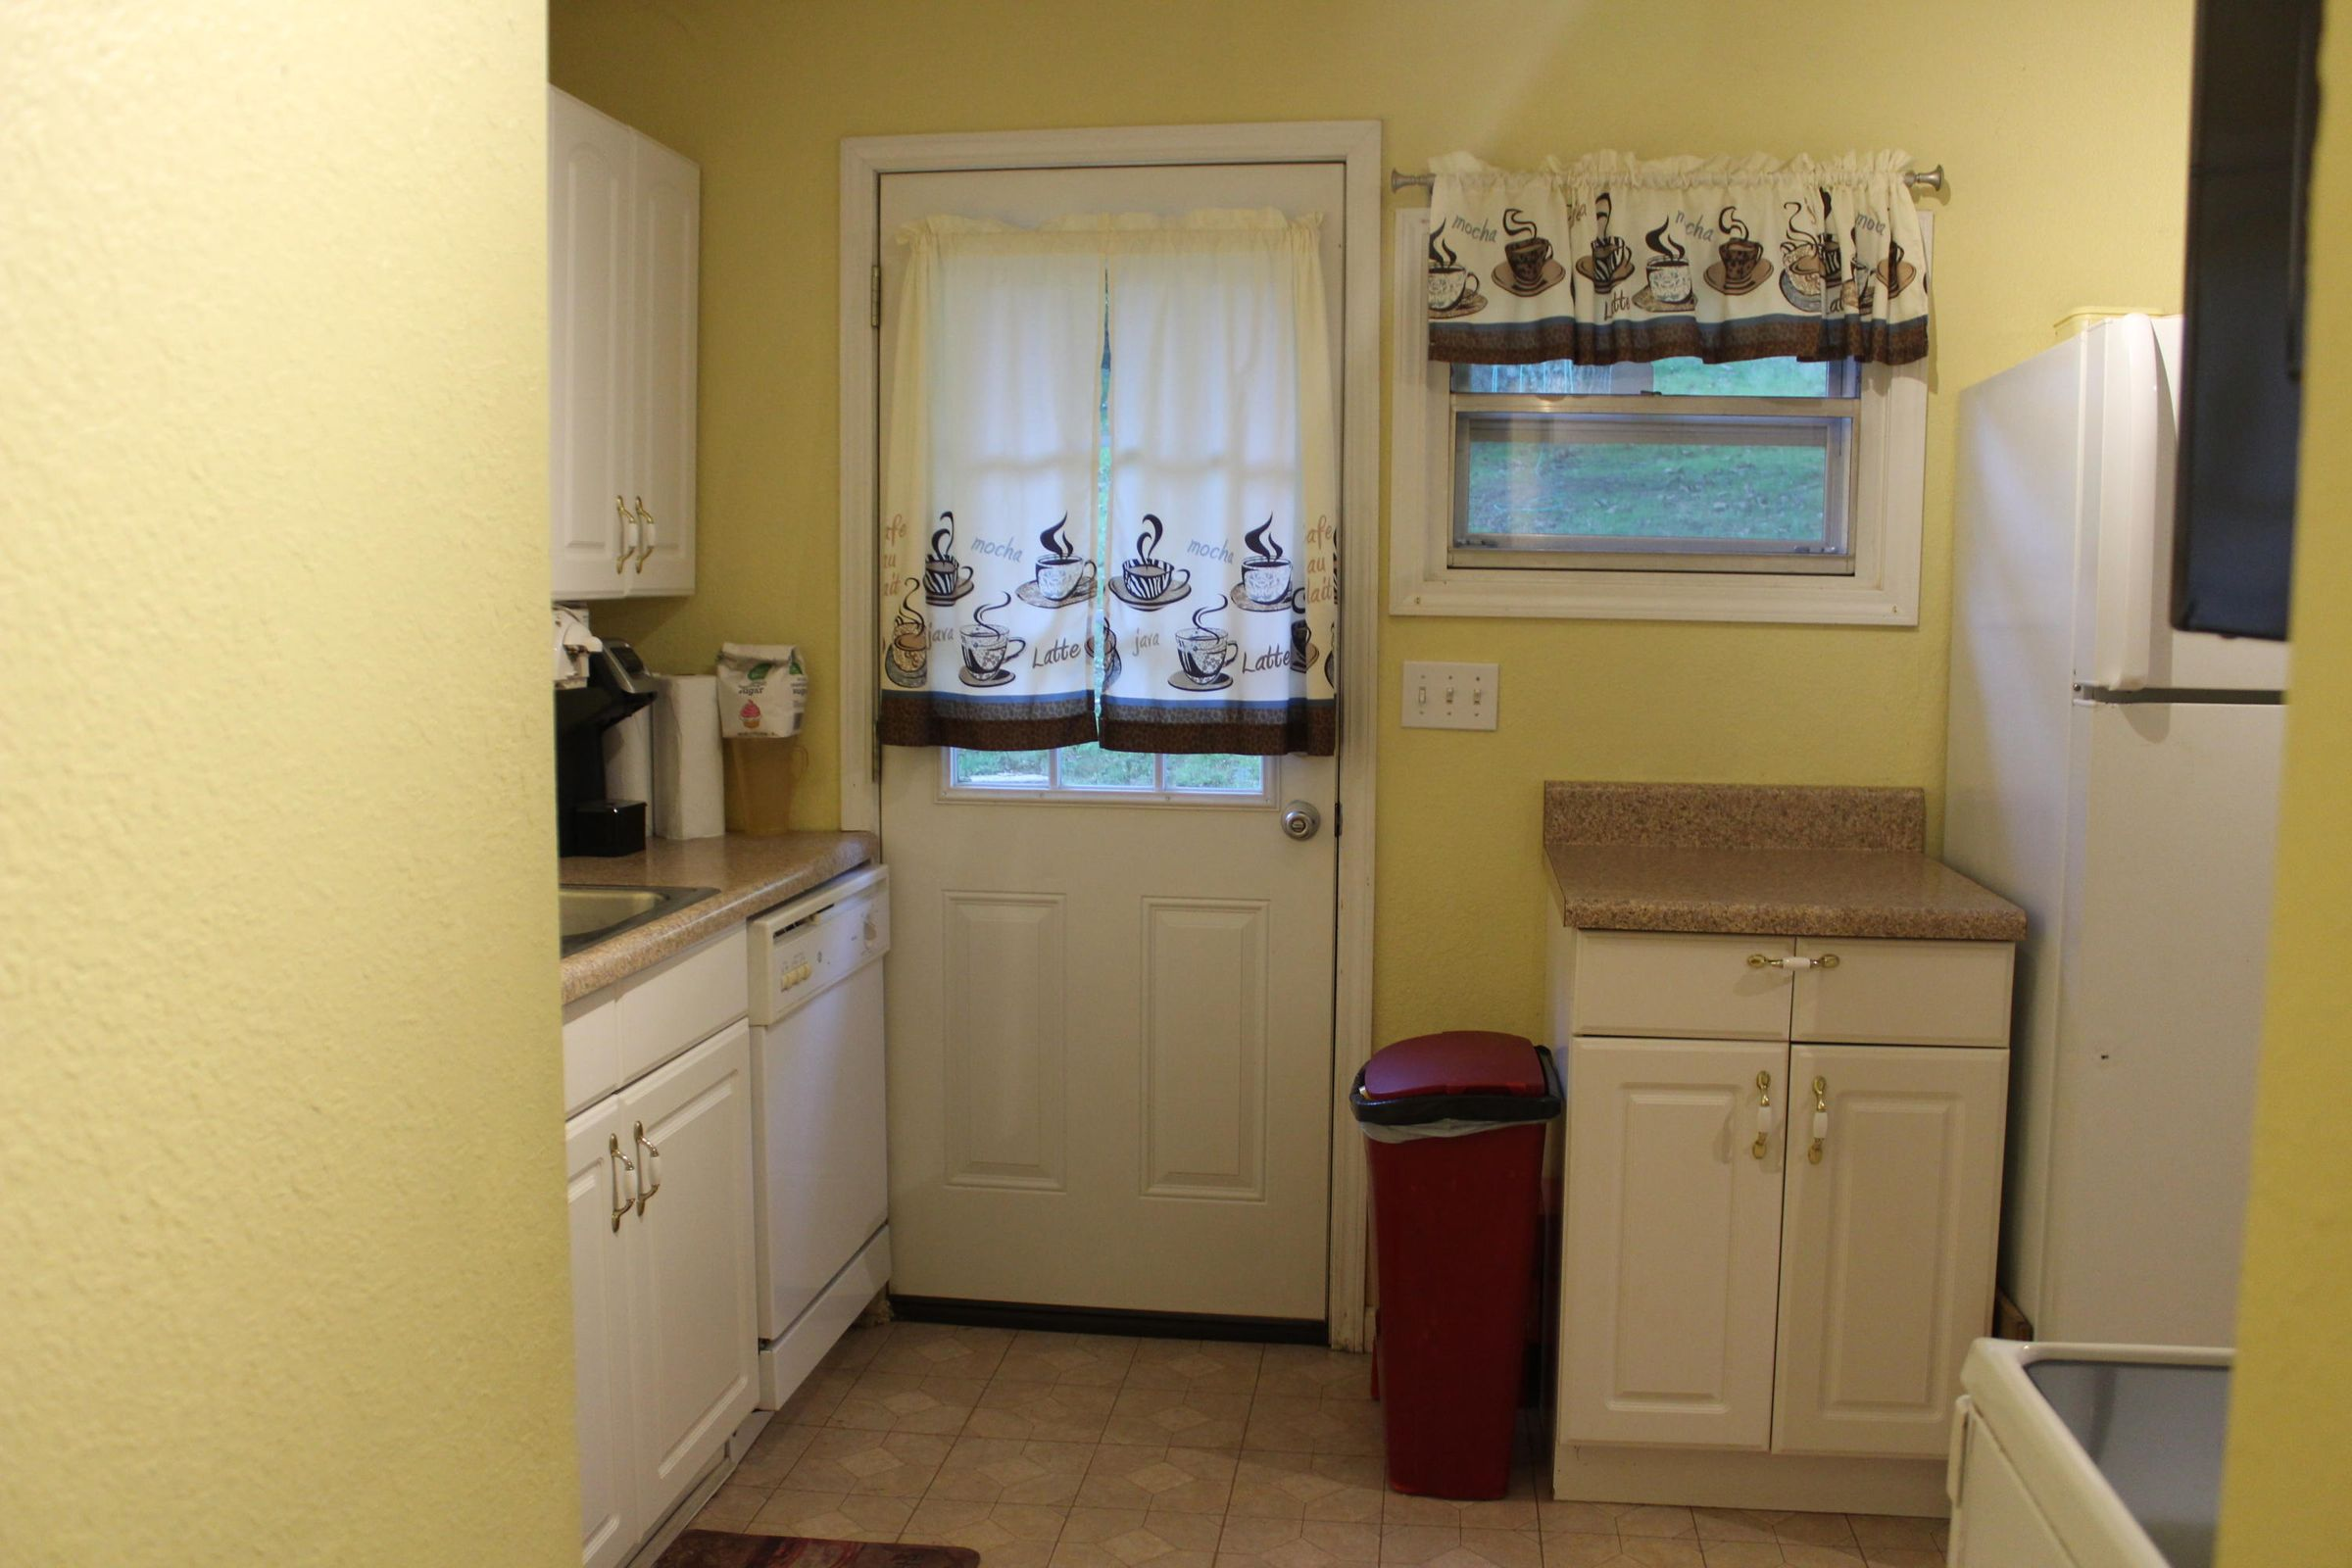 Door to outside in kitchen